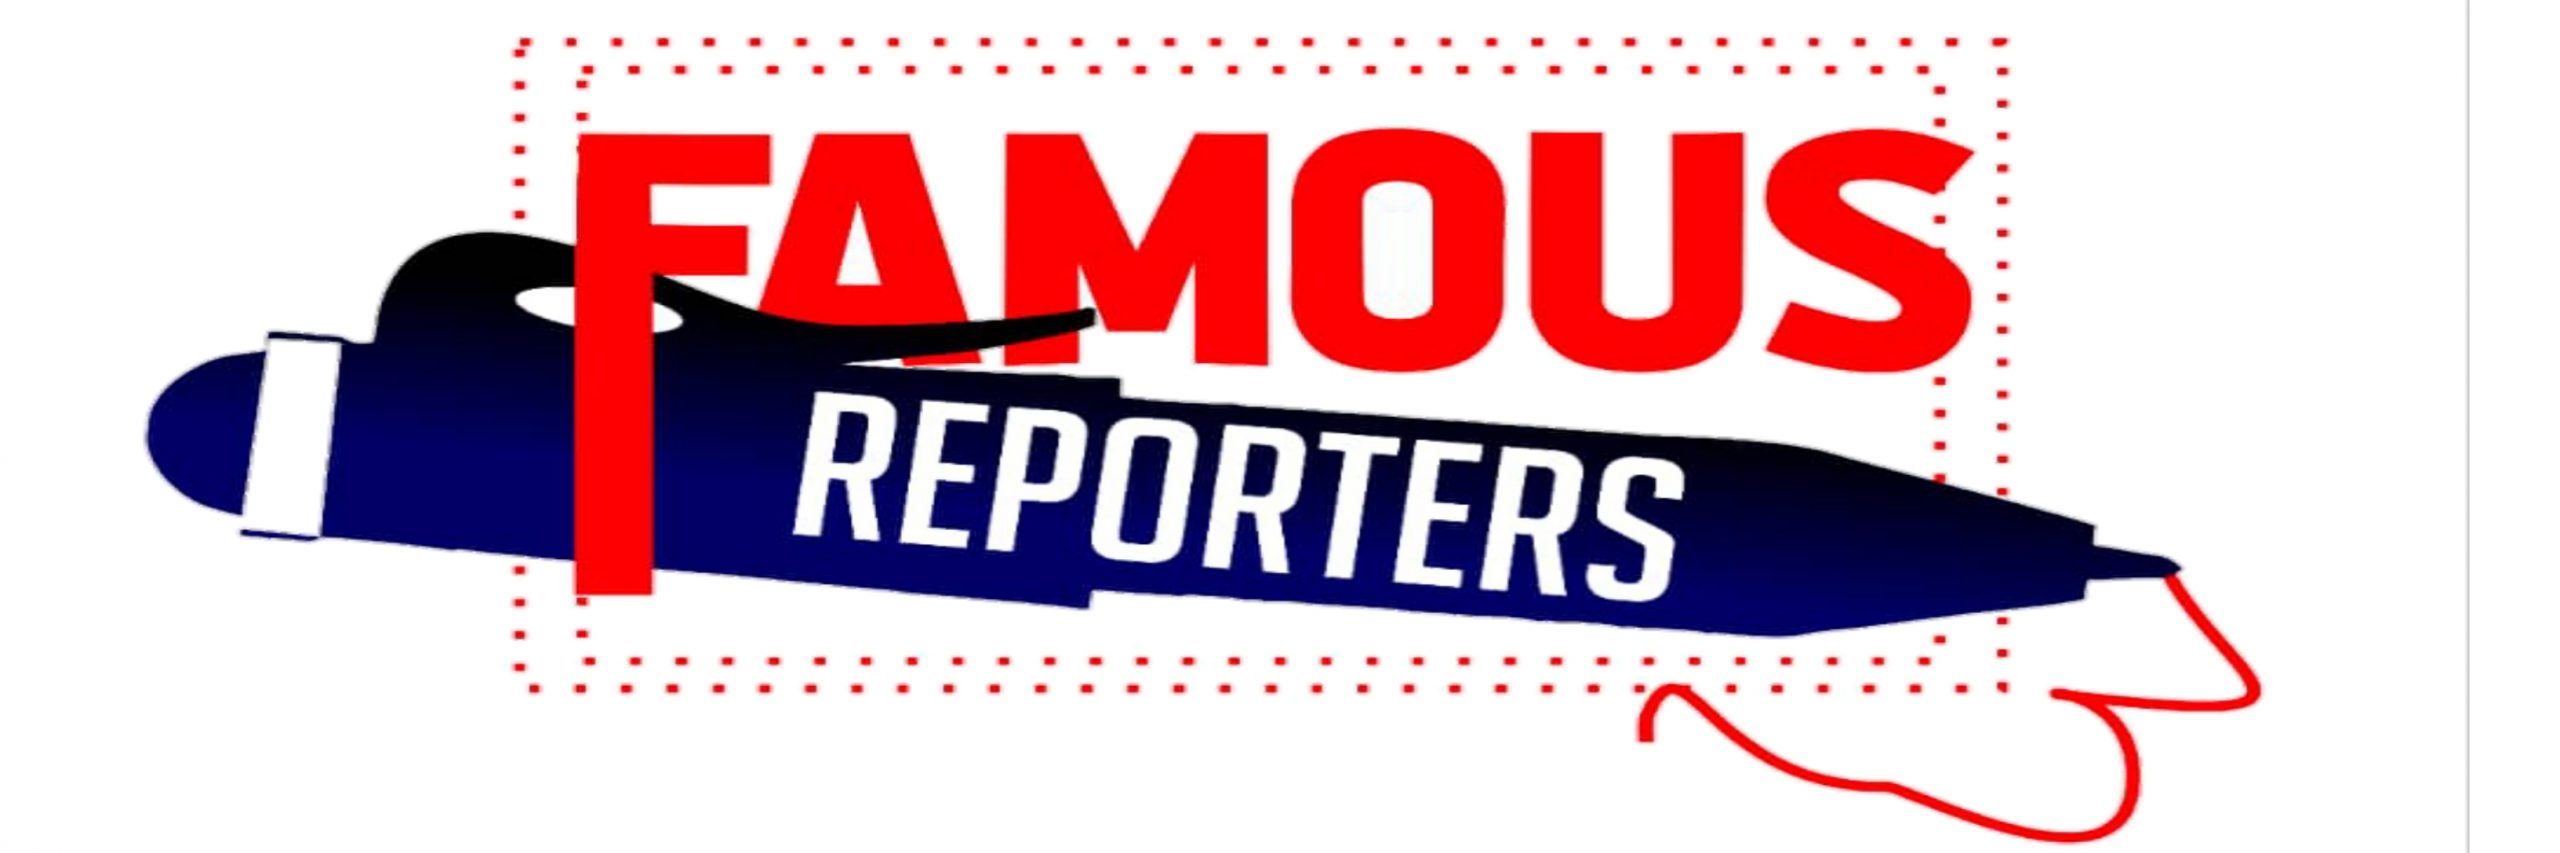 FAMOUS REPORTERS